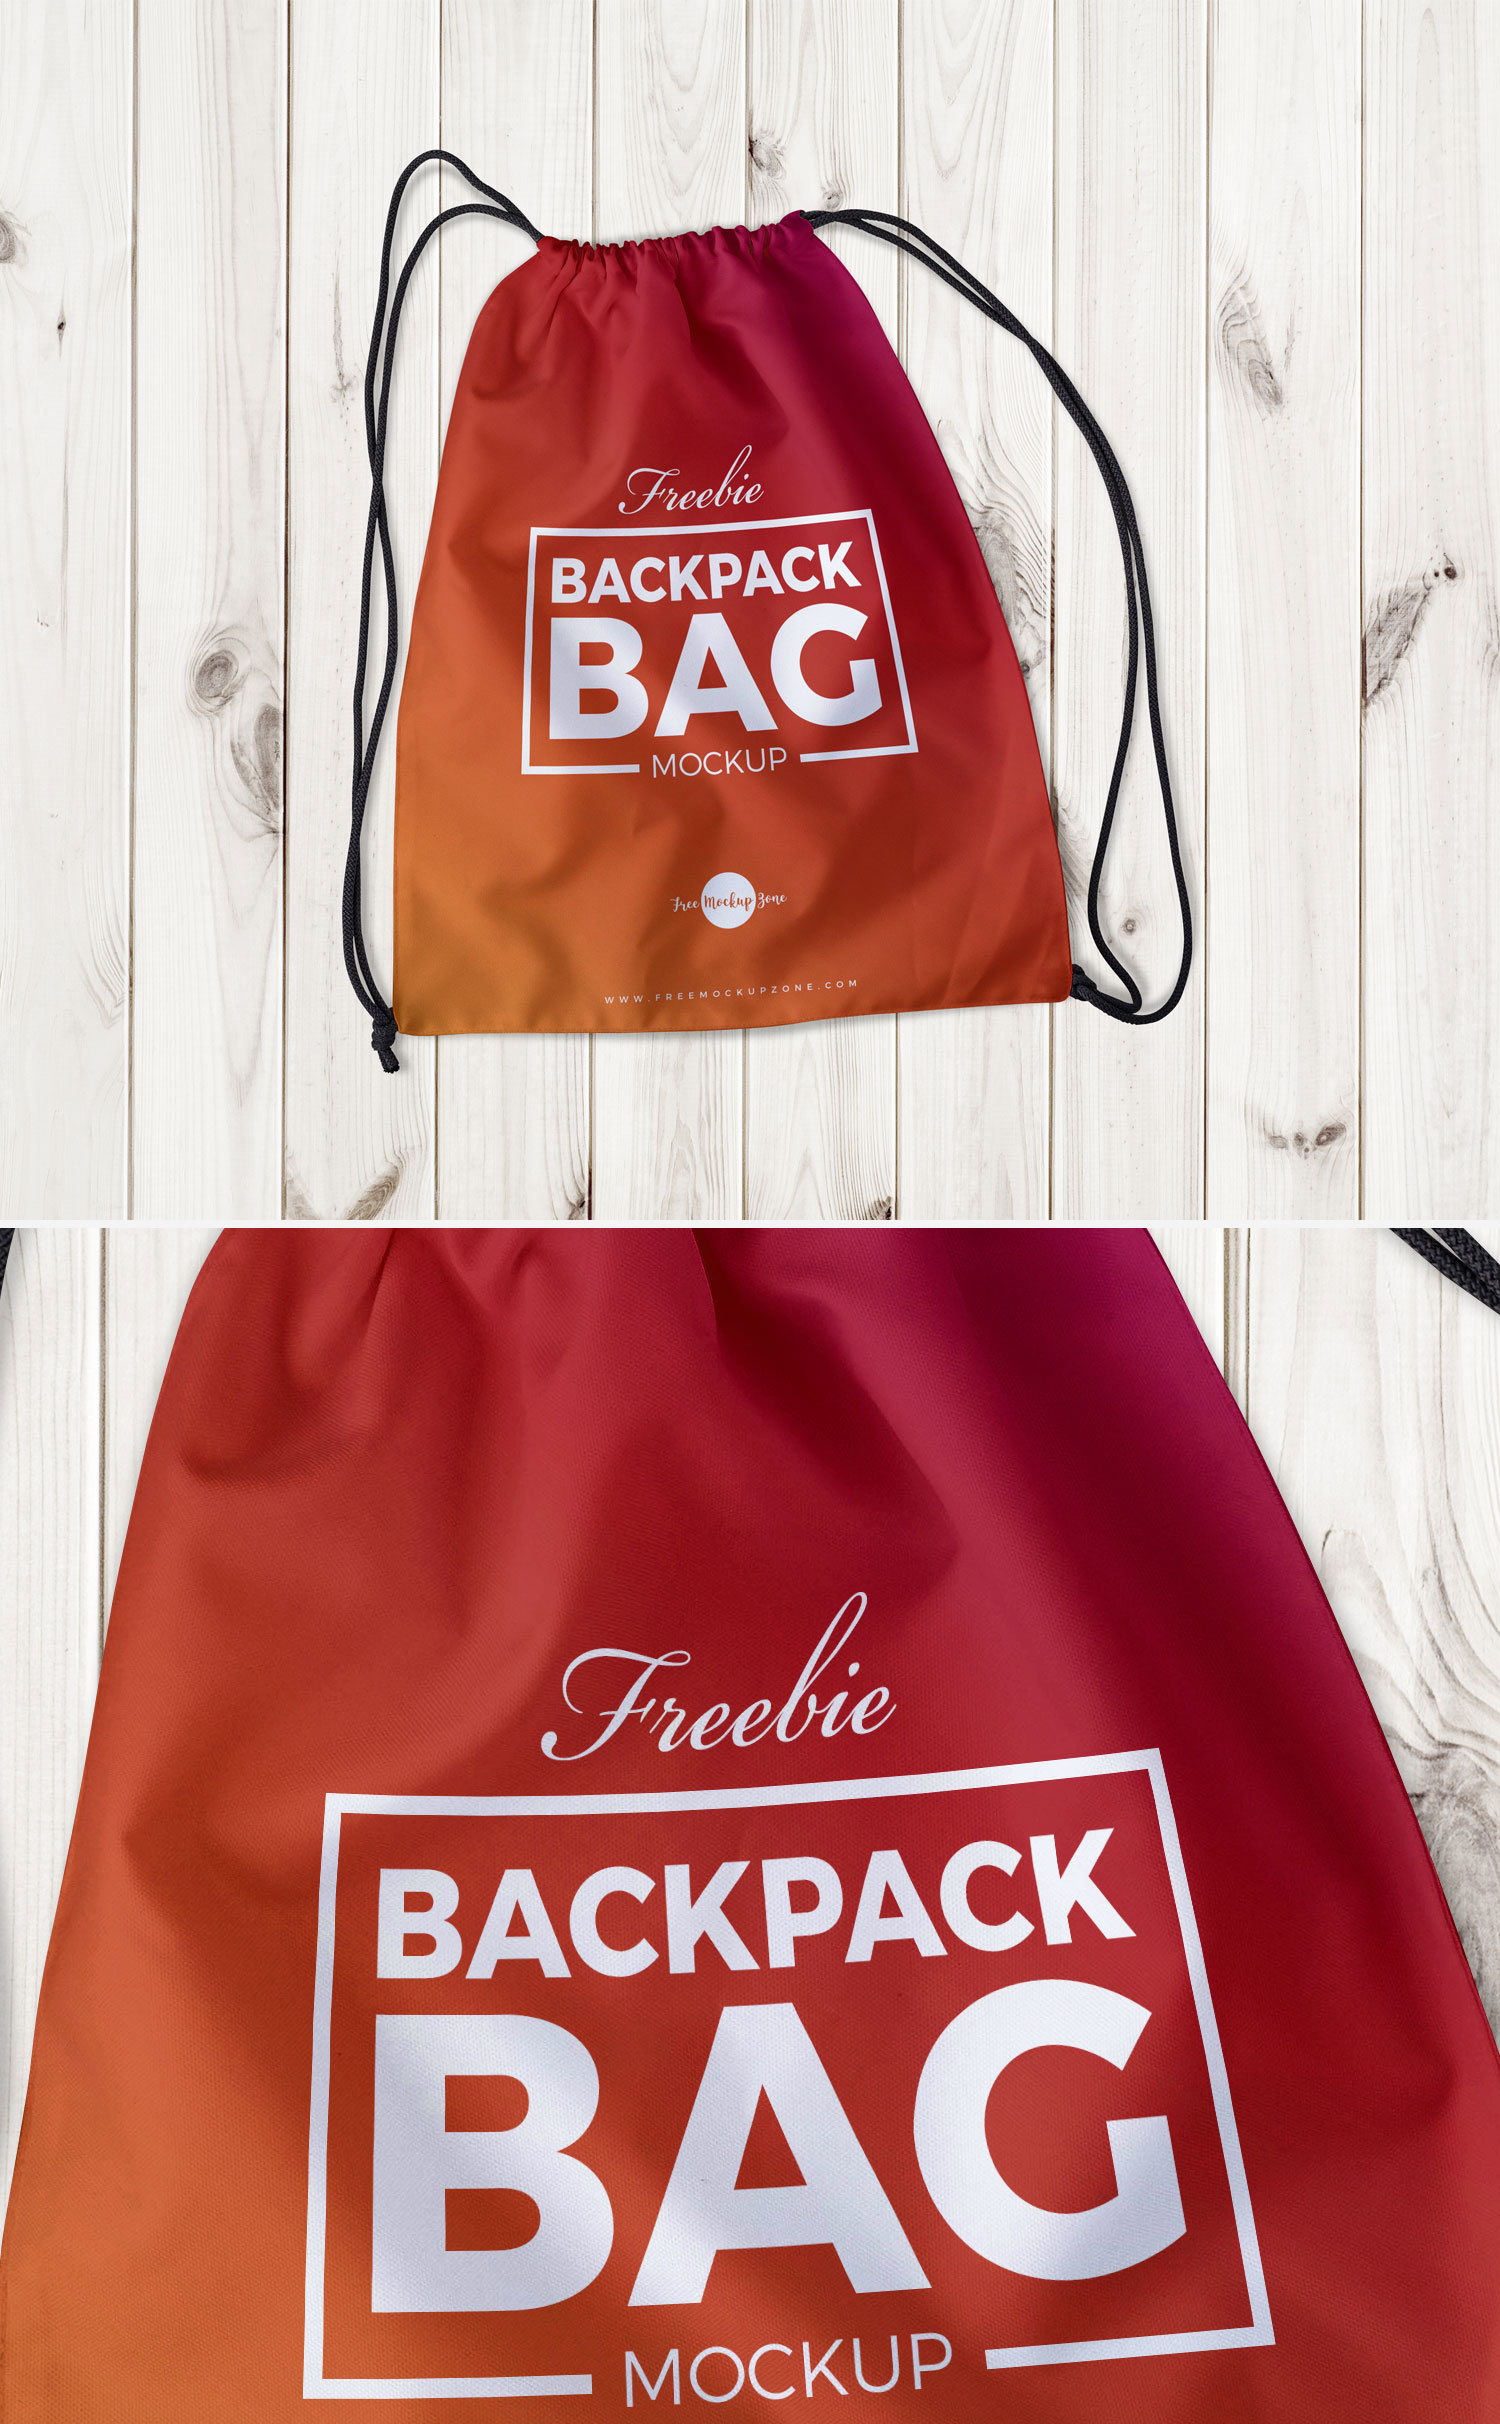 Free-PSD-Backpack-Bag-Mockup-2018-300